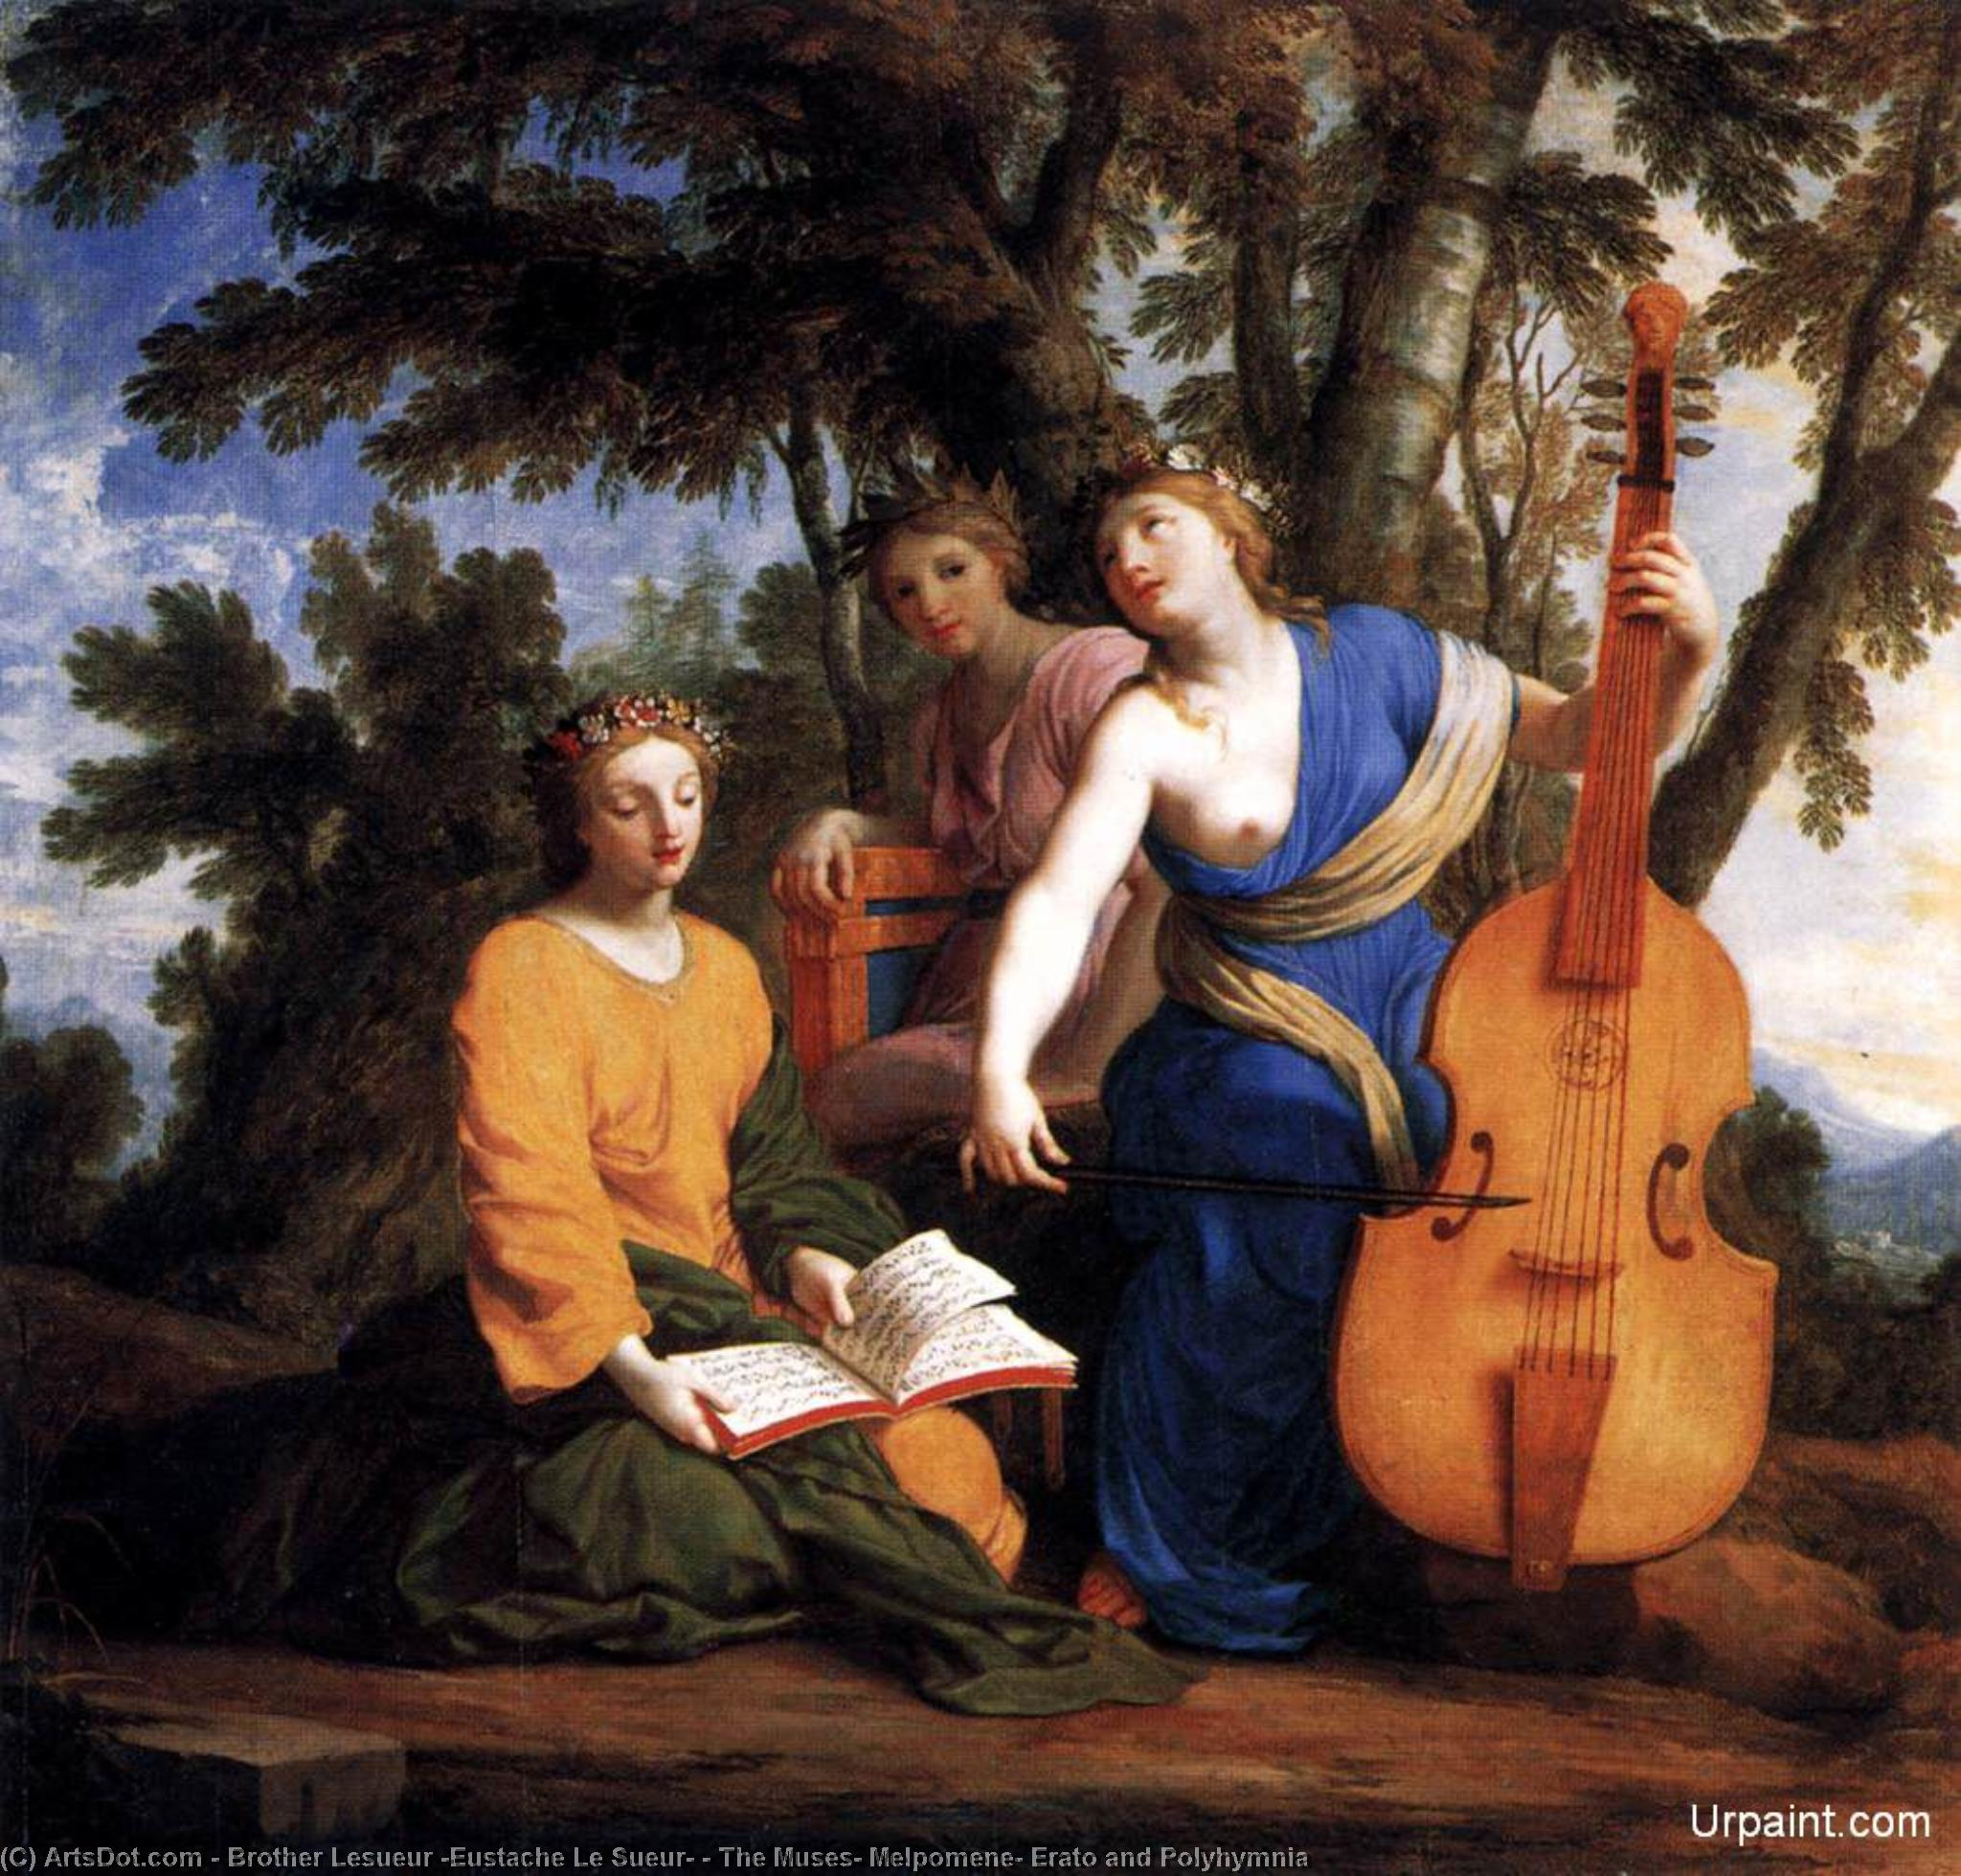 Wikioo.org - The Encyclopedia of Fine Arts - Painting, Artwork by Brother Lesueur (Eustache Le Sueur) - The Muses: Melpomene, Erato and Polyhymnia